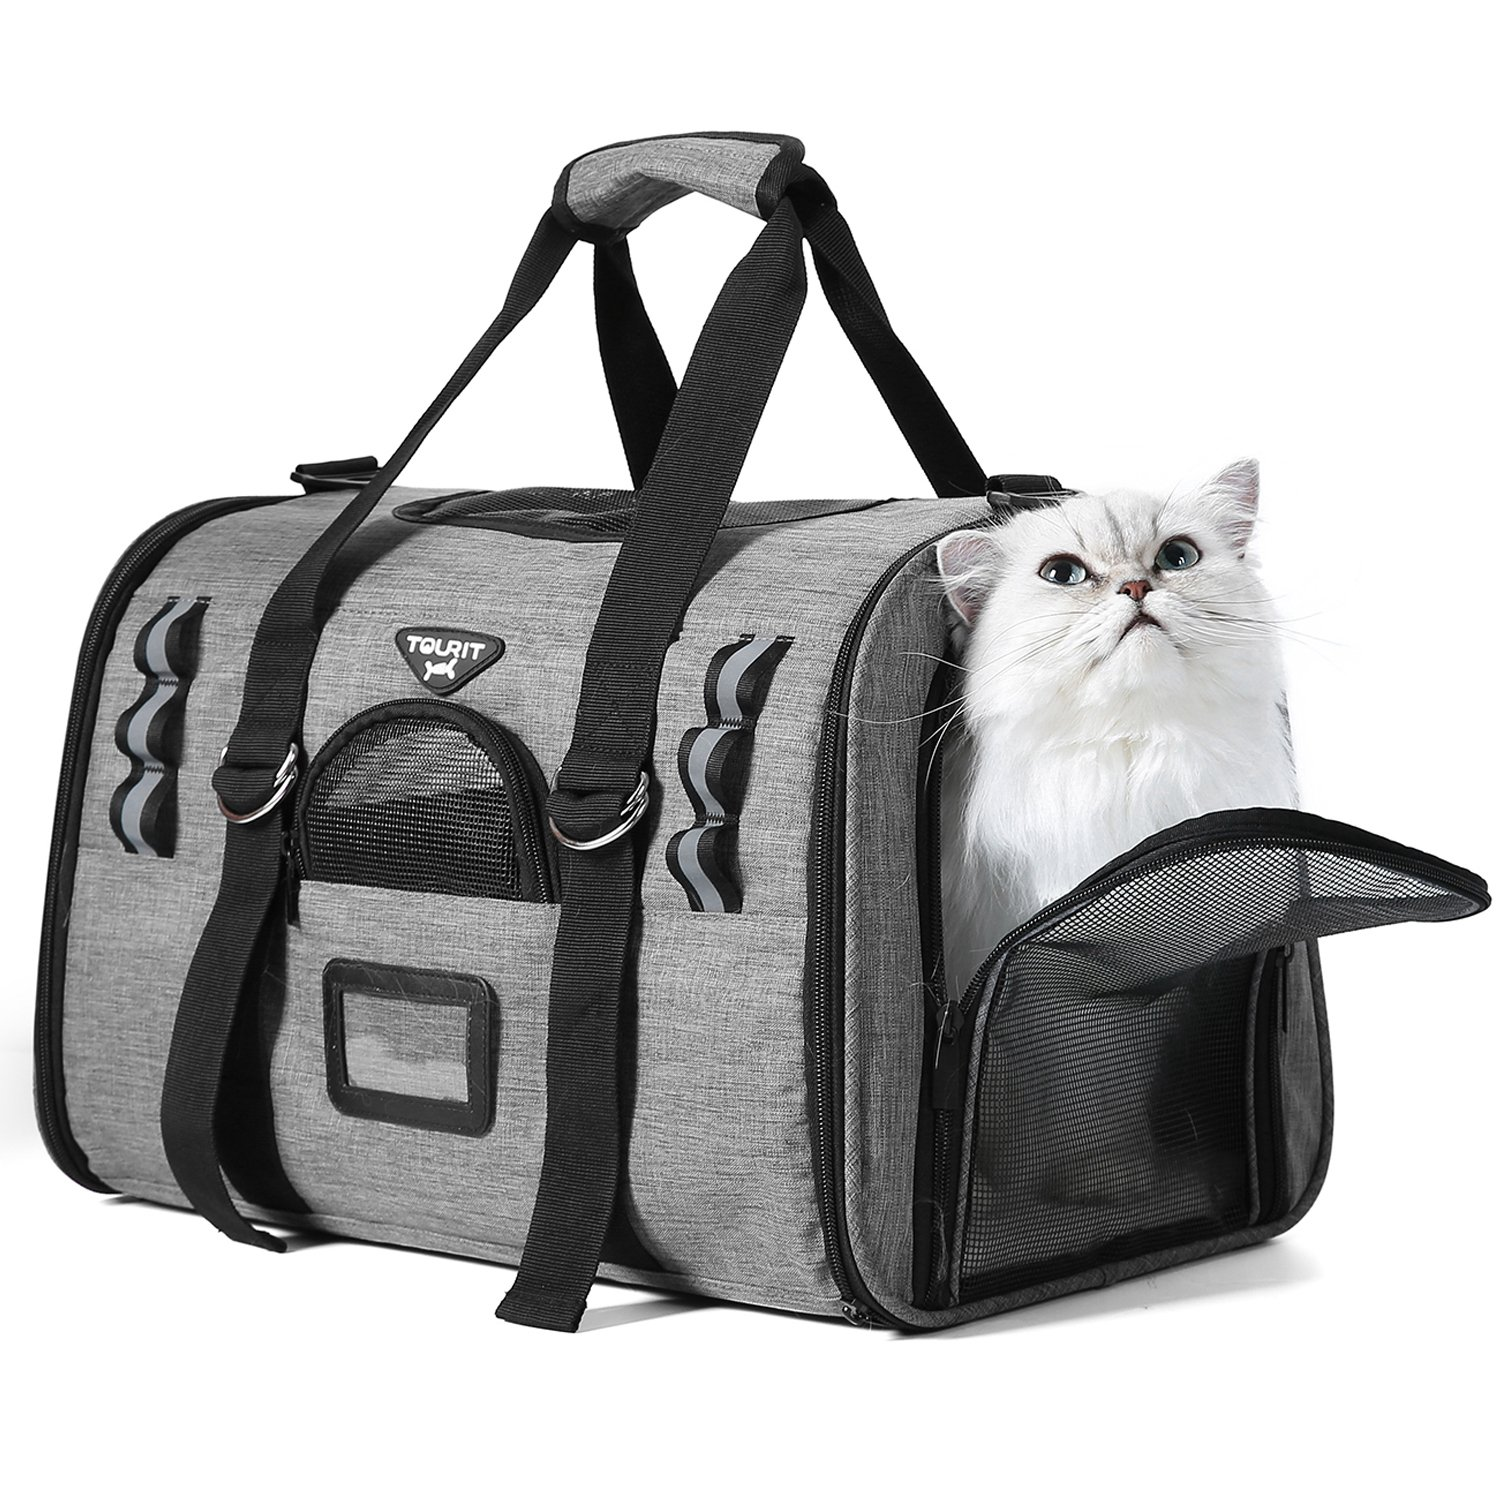 TOURIT Soft Sided Cat Carrier Airline Approved Under Seat Sturdy Pet Travel Carrier with 2 Fleece Pads for Small Dogs and Cats Ideal for Vet Visits Outdoor